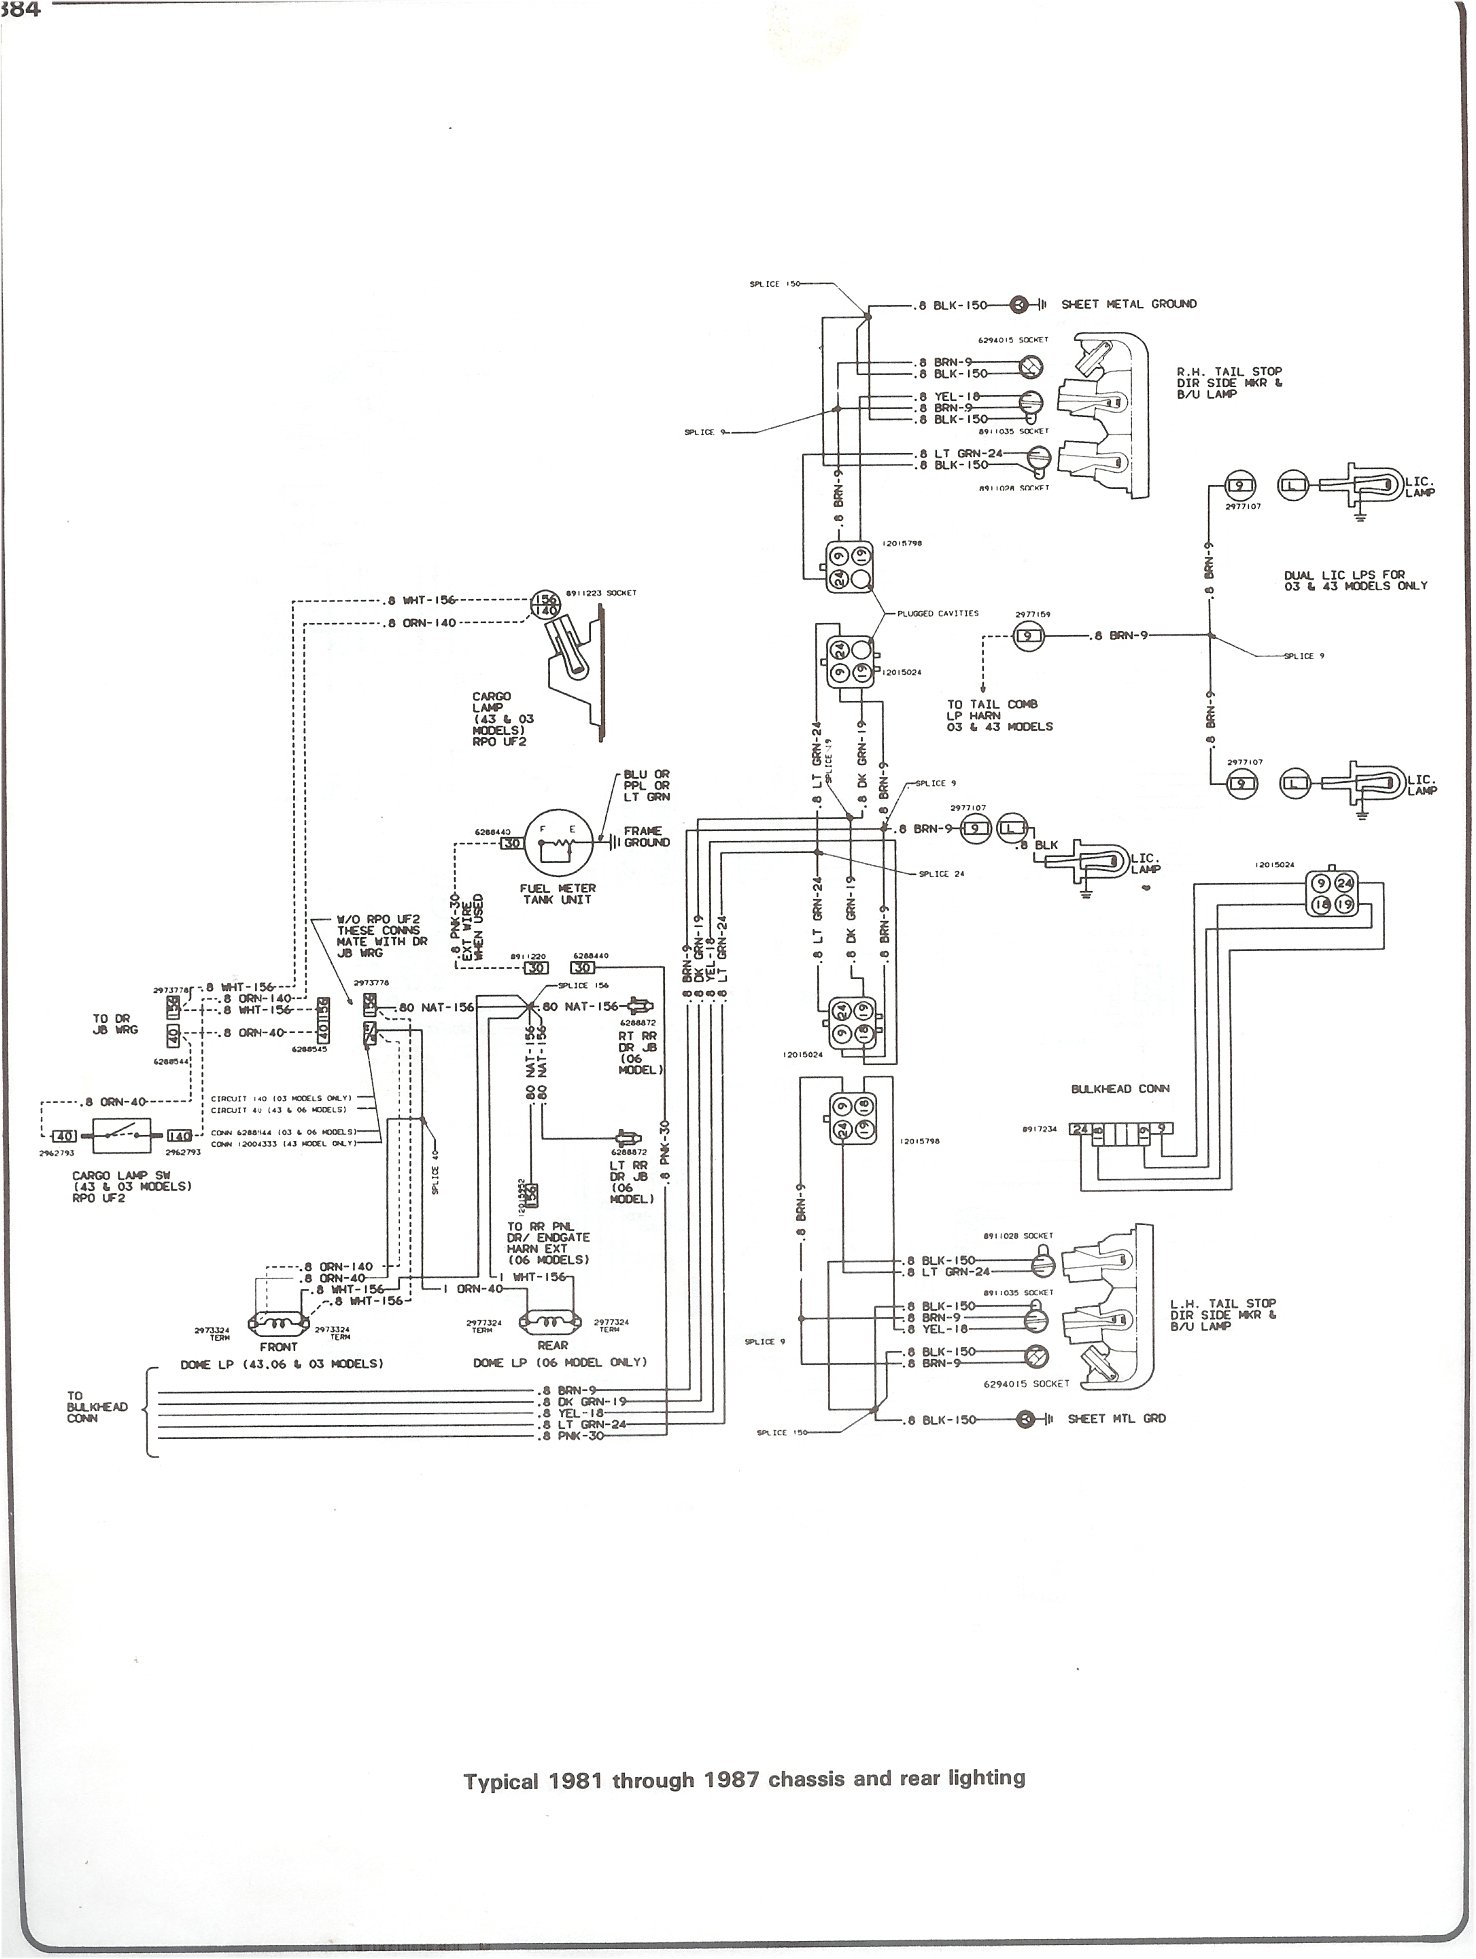 1970 buick skylark wiring diagram best wiring library 1974 Jeep CJ5 Wiring-Diagram plete 73 87 wiring diagrams 81 chevy c10 wiring diagram 81 87 chassis and rear